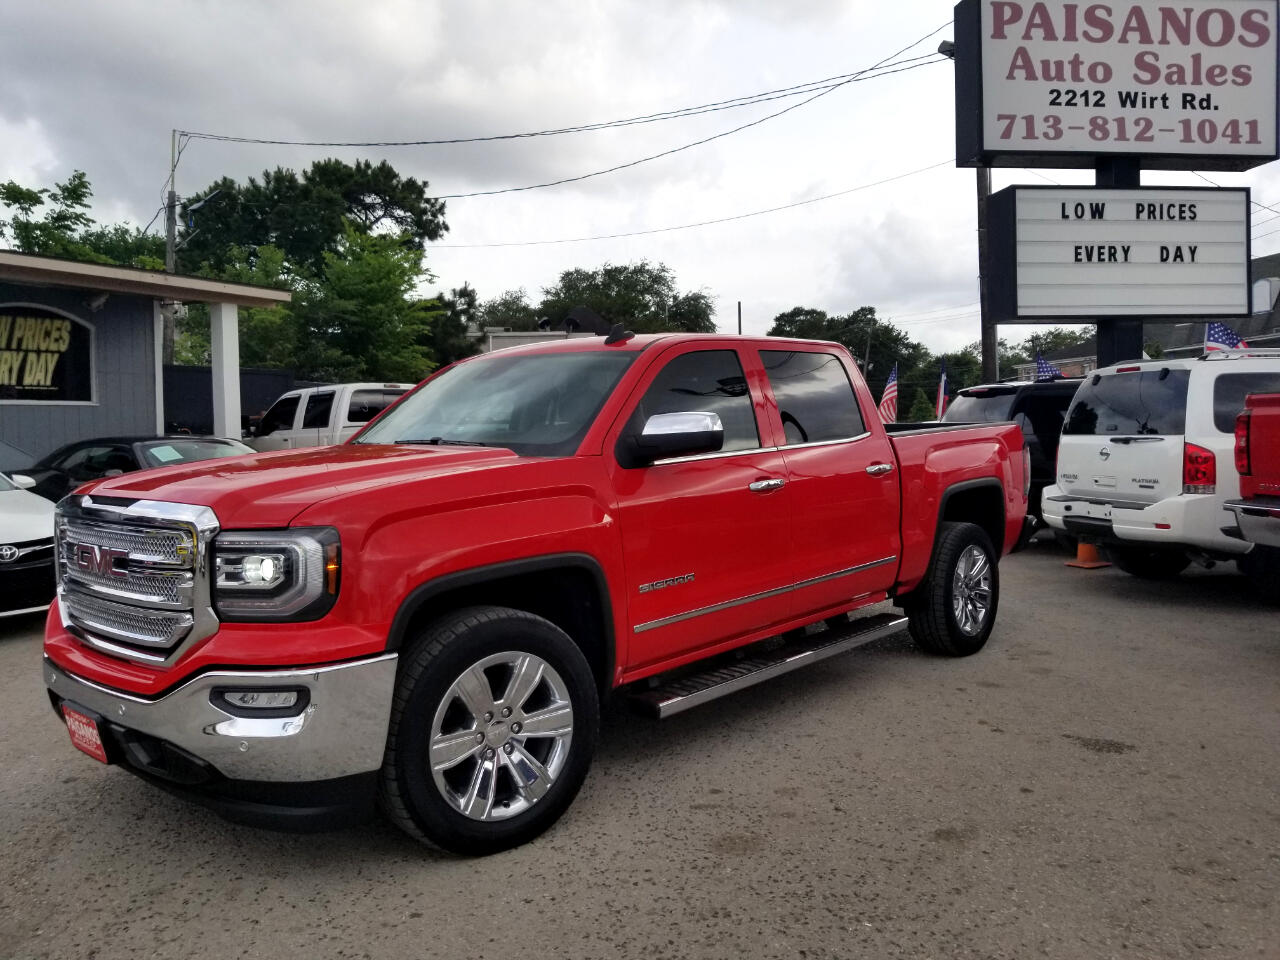 2016 GMC Sierra 1500 SLT Crew Cab Long Box 2WD